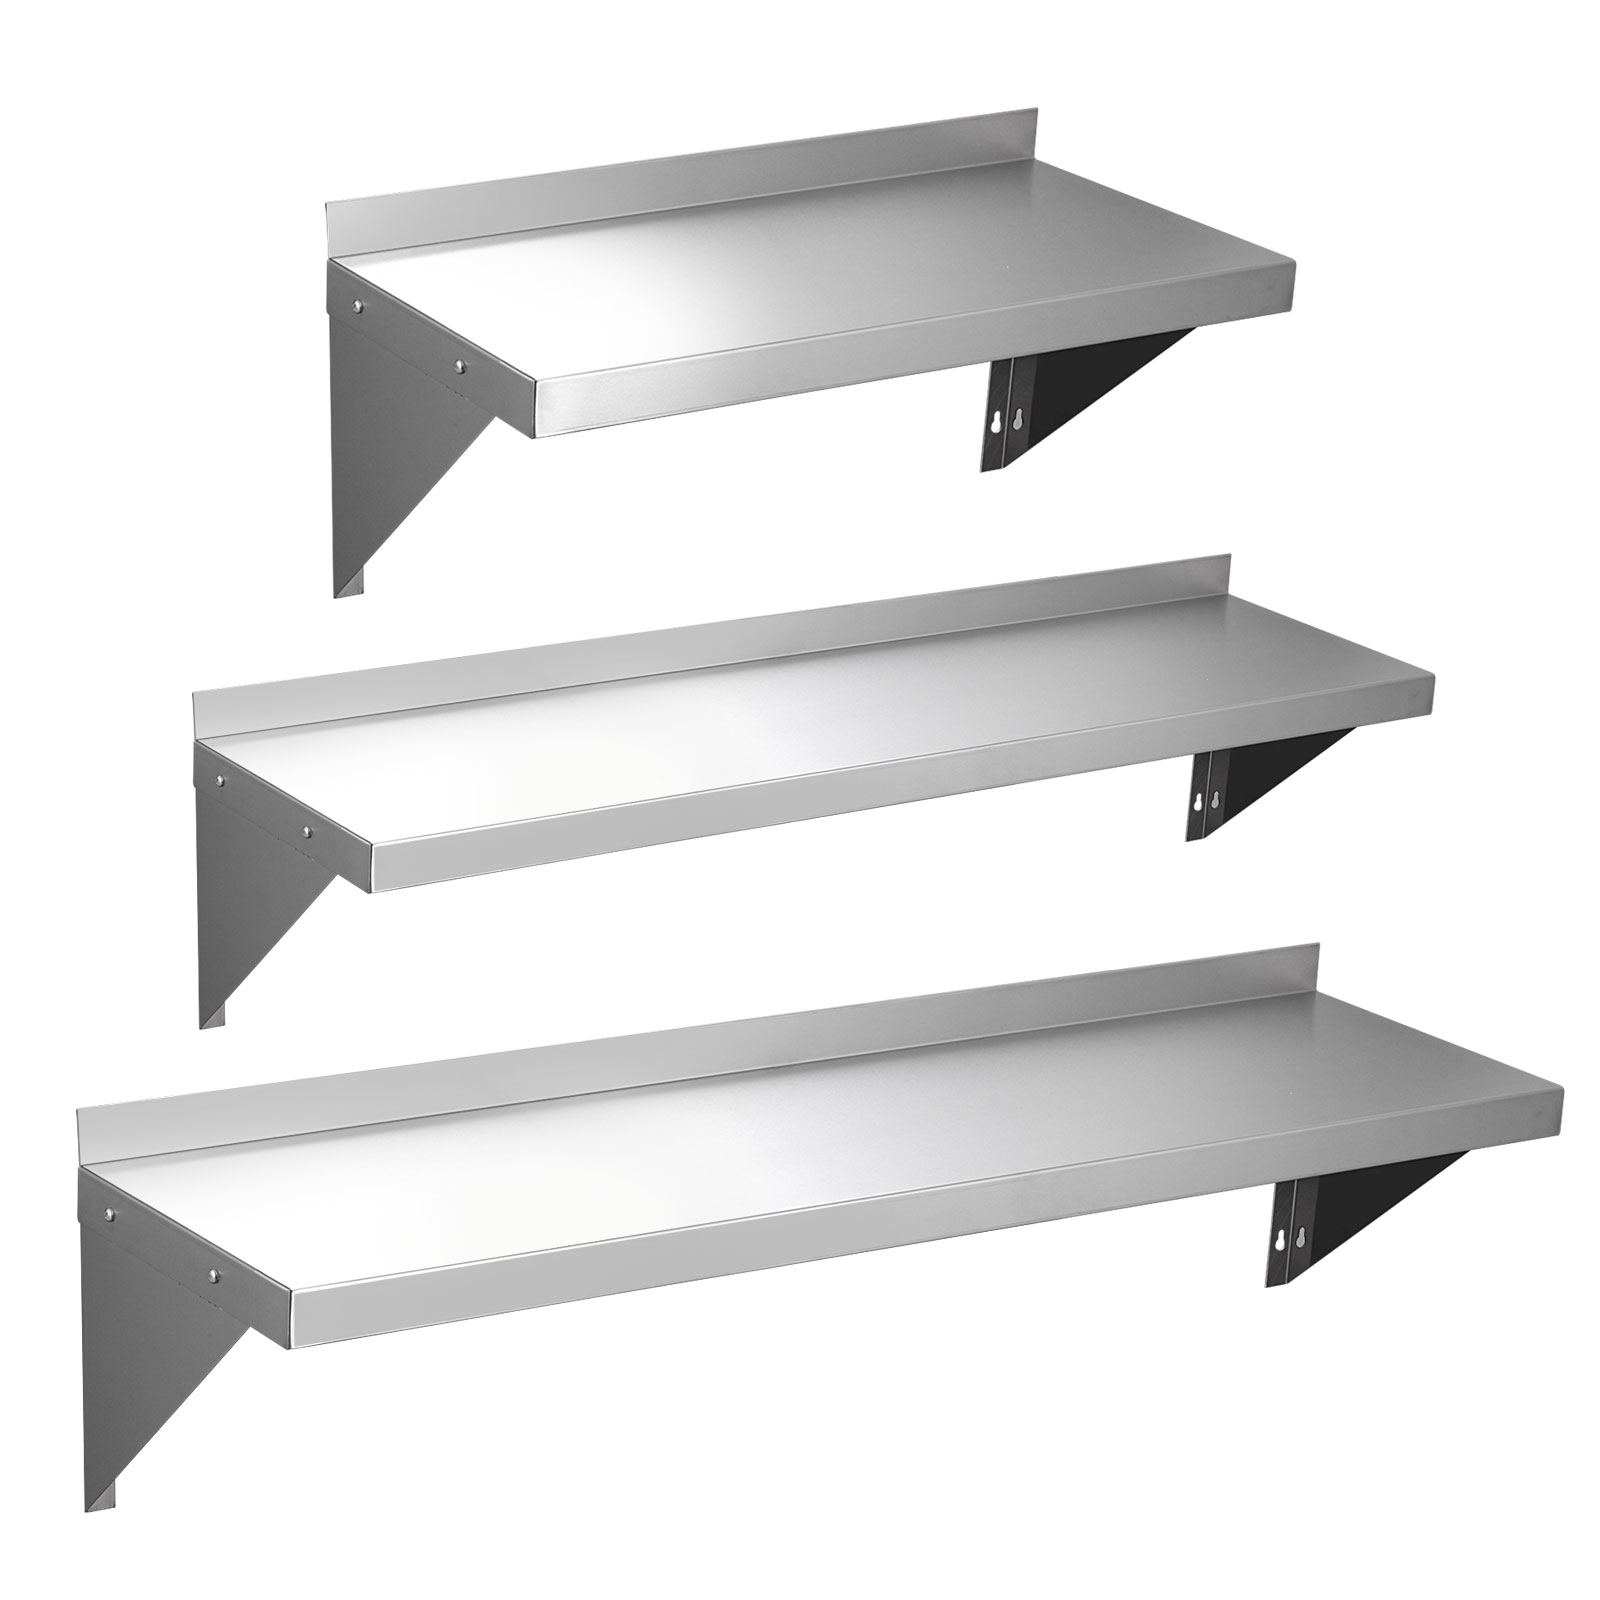 Industrial Kitchen Shelving: 600/900/1200mm Commercial Stainless Steel Wall Shelf